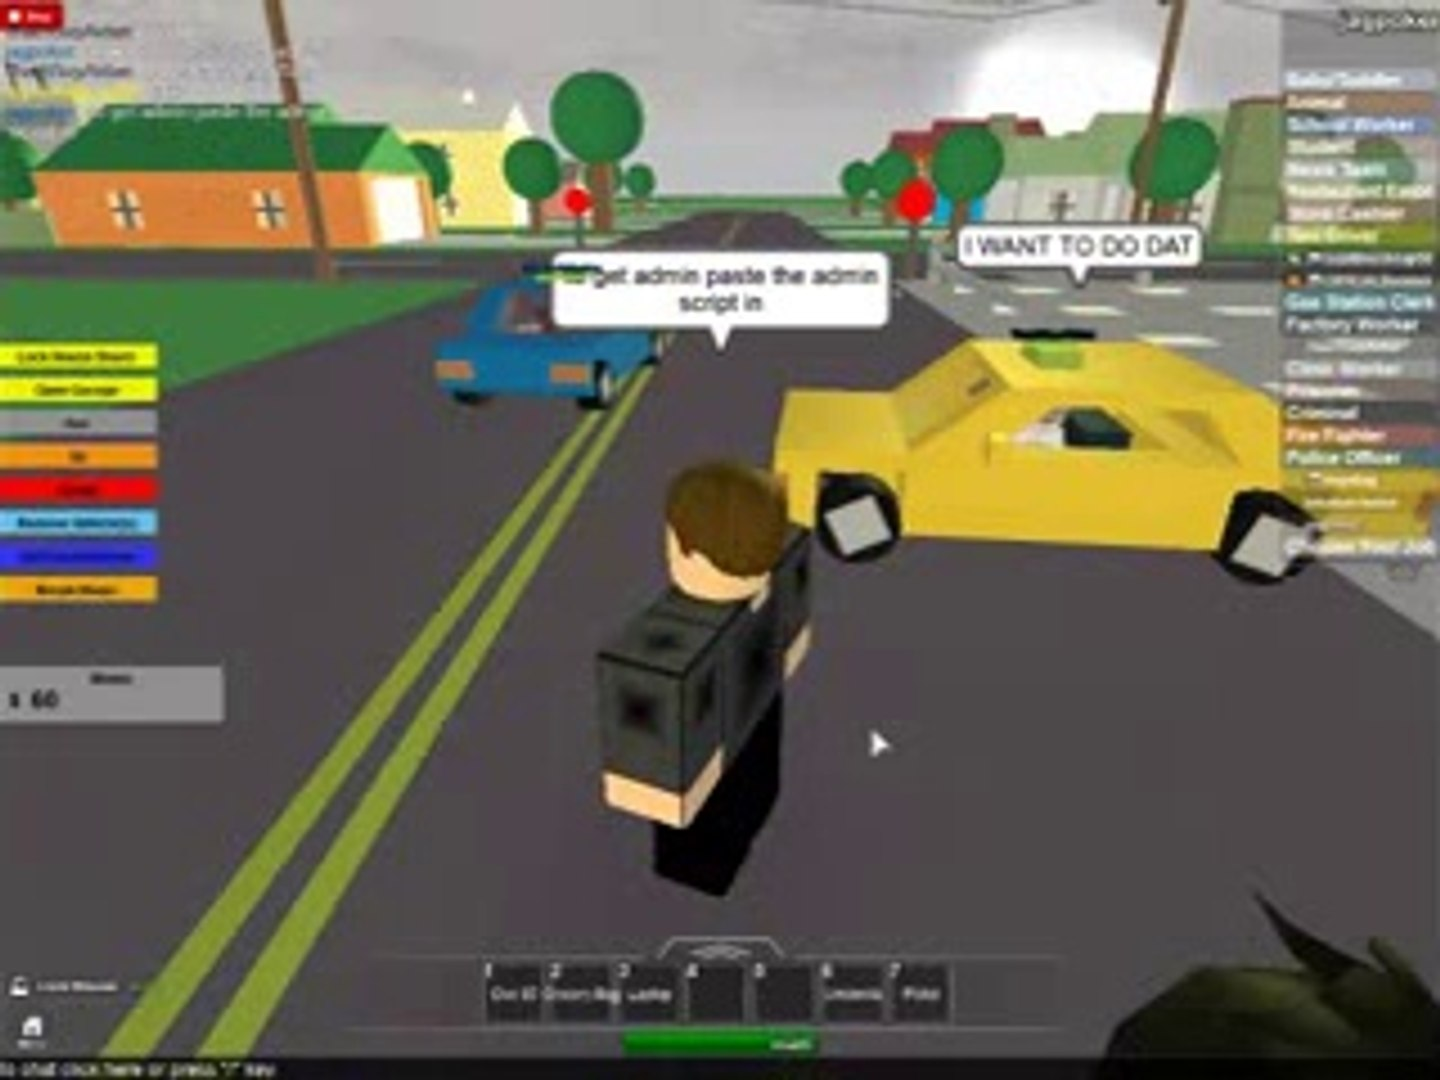 Roblox Admin Download Mediafire Roblox Speed And Admin Exploit New 2014 June Fixing Video Dailymotion